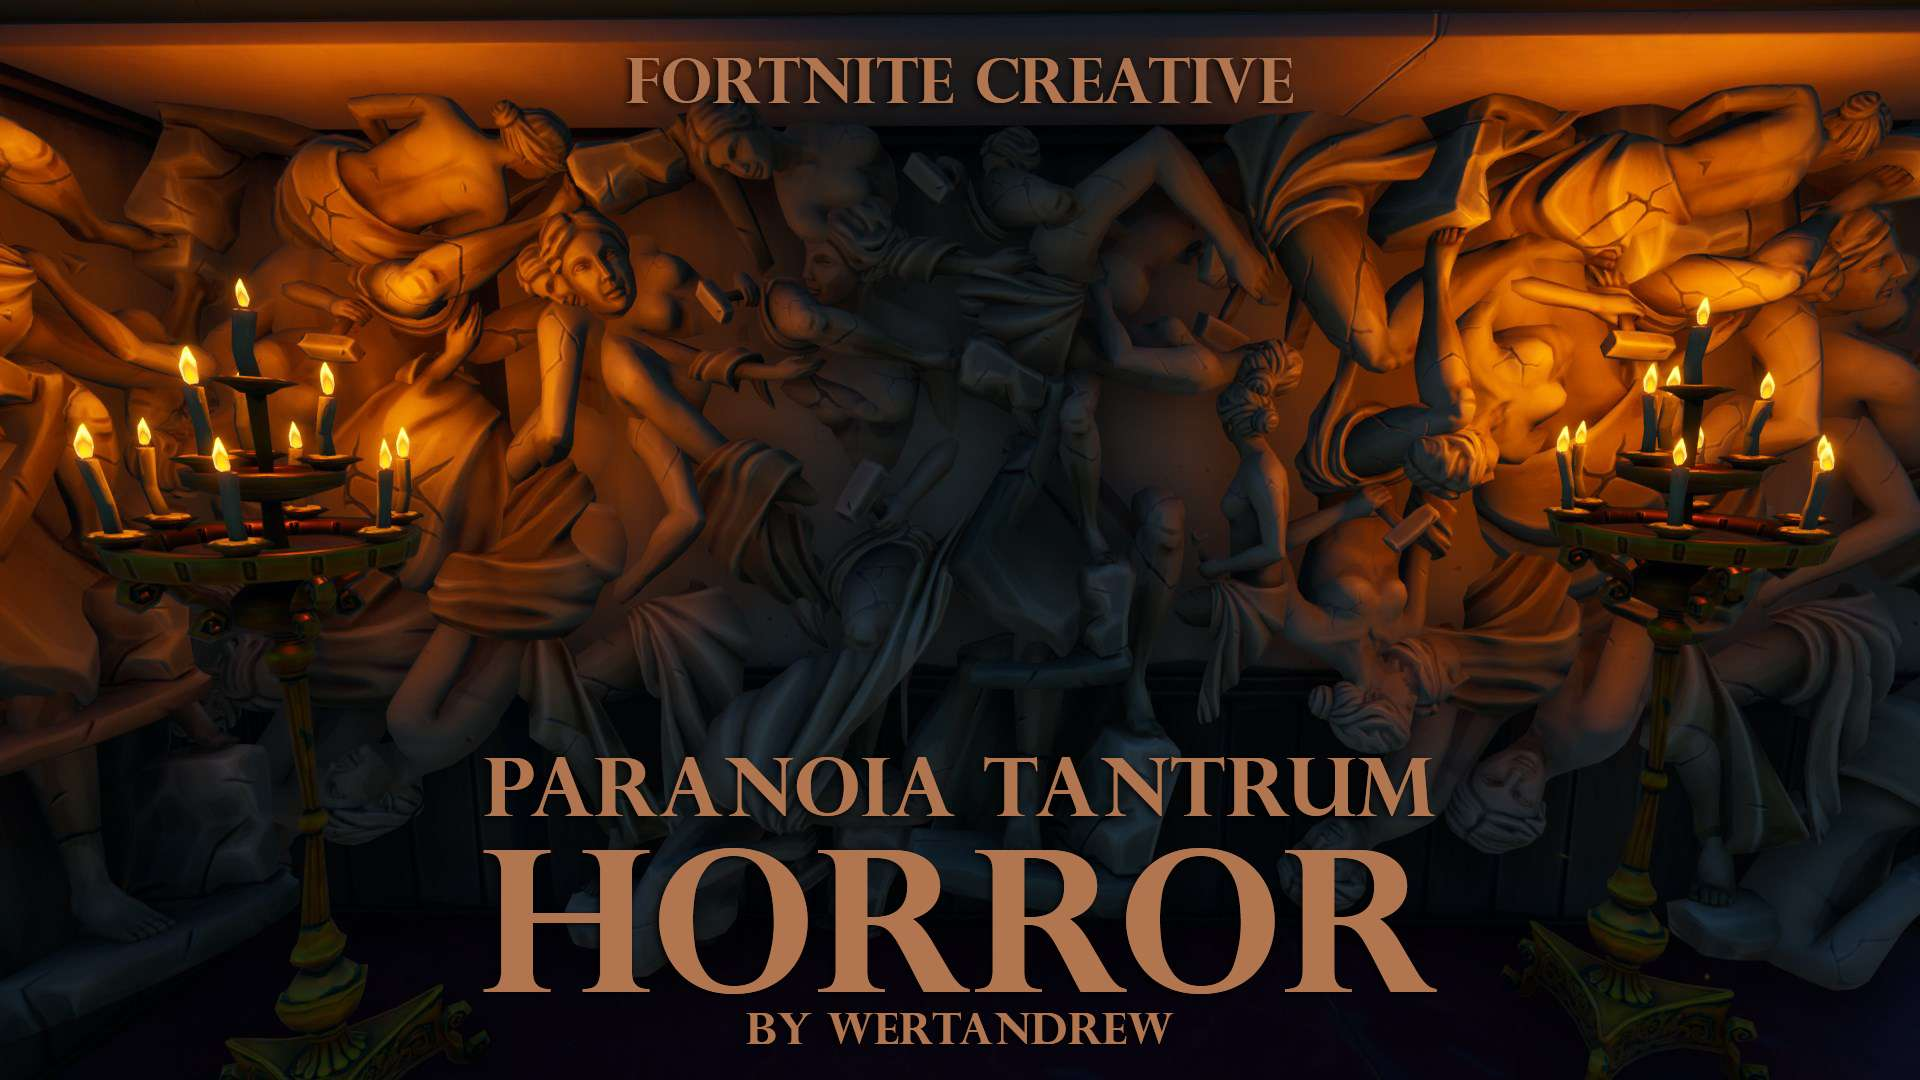 PARANOIA TANTRUM (HORROR)